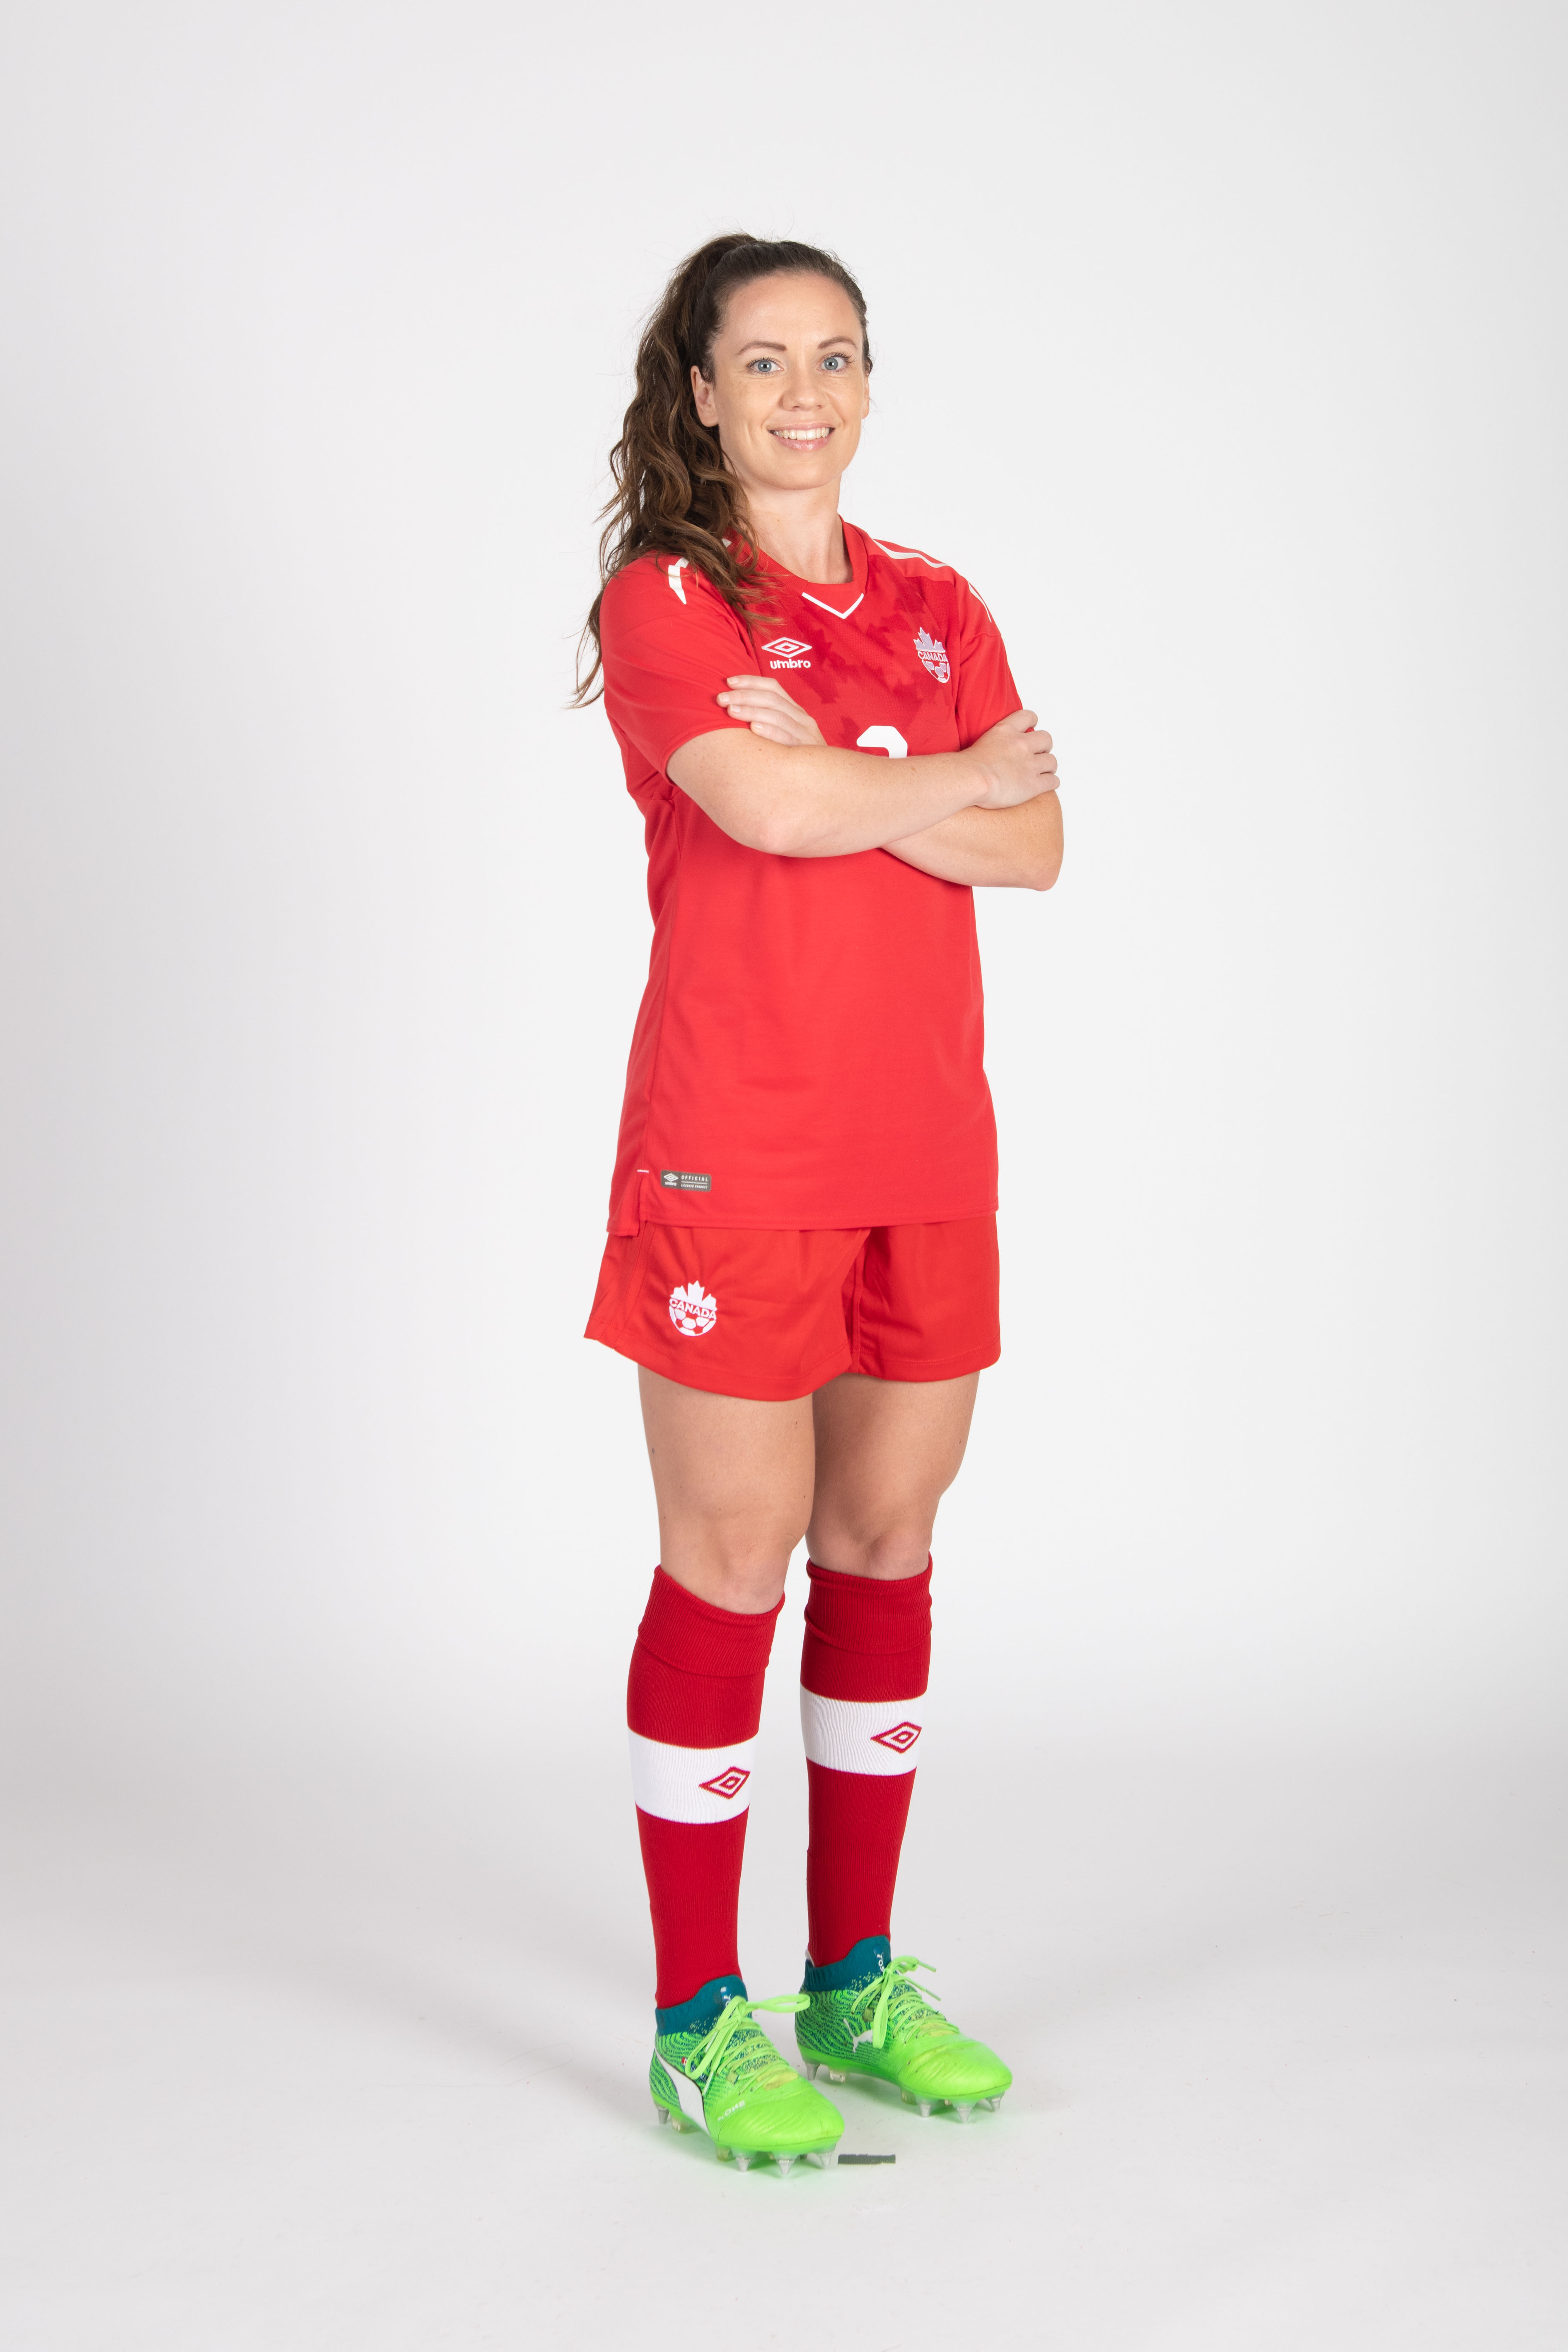 20180604_CANWNT_Chapman_byBazyl14